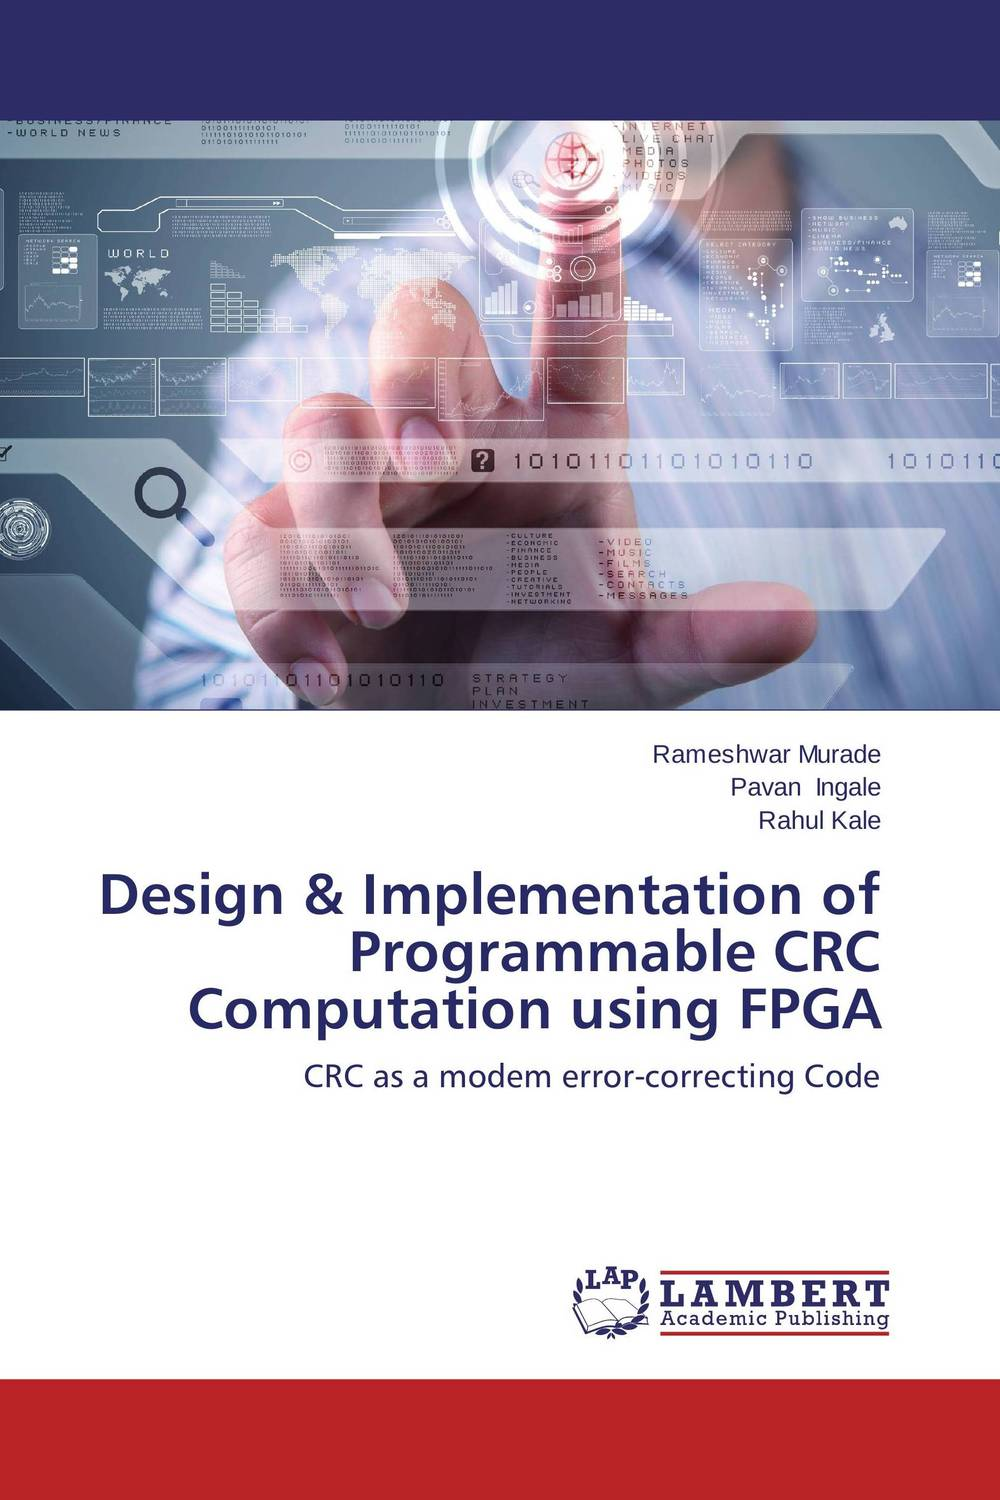 Design & Implementation of Programmable CRC Computation using FPGA